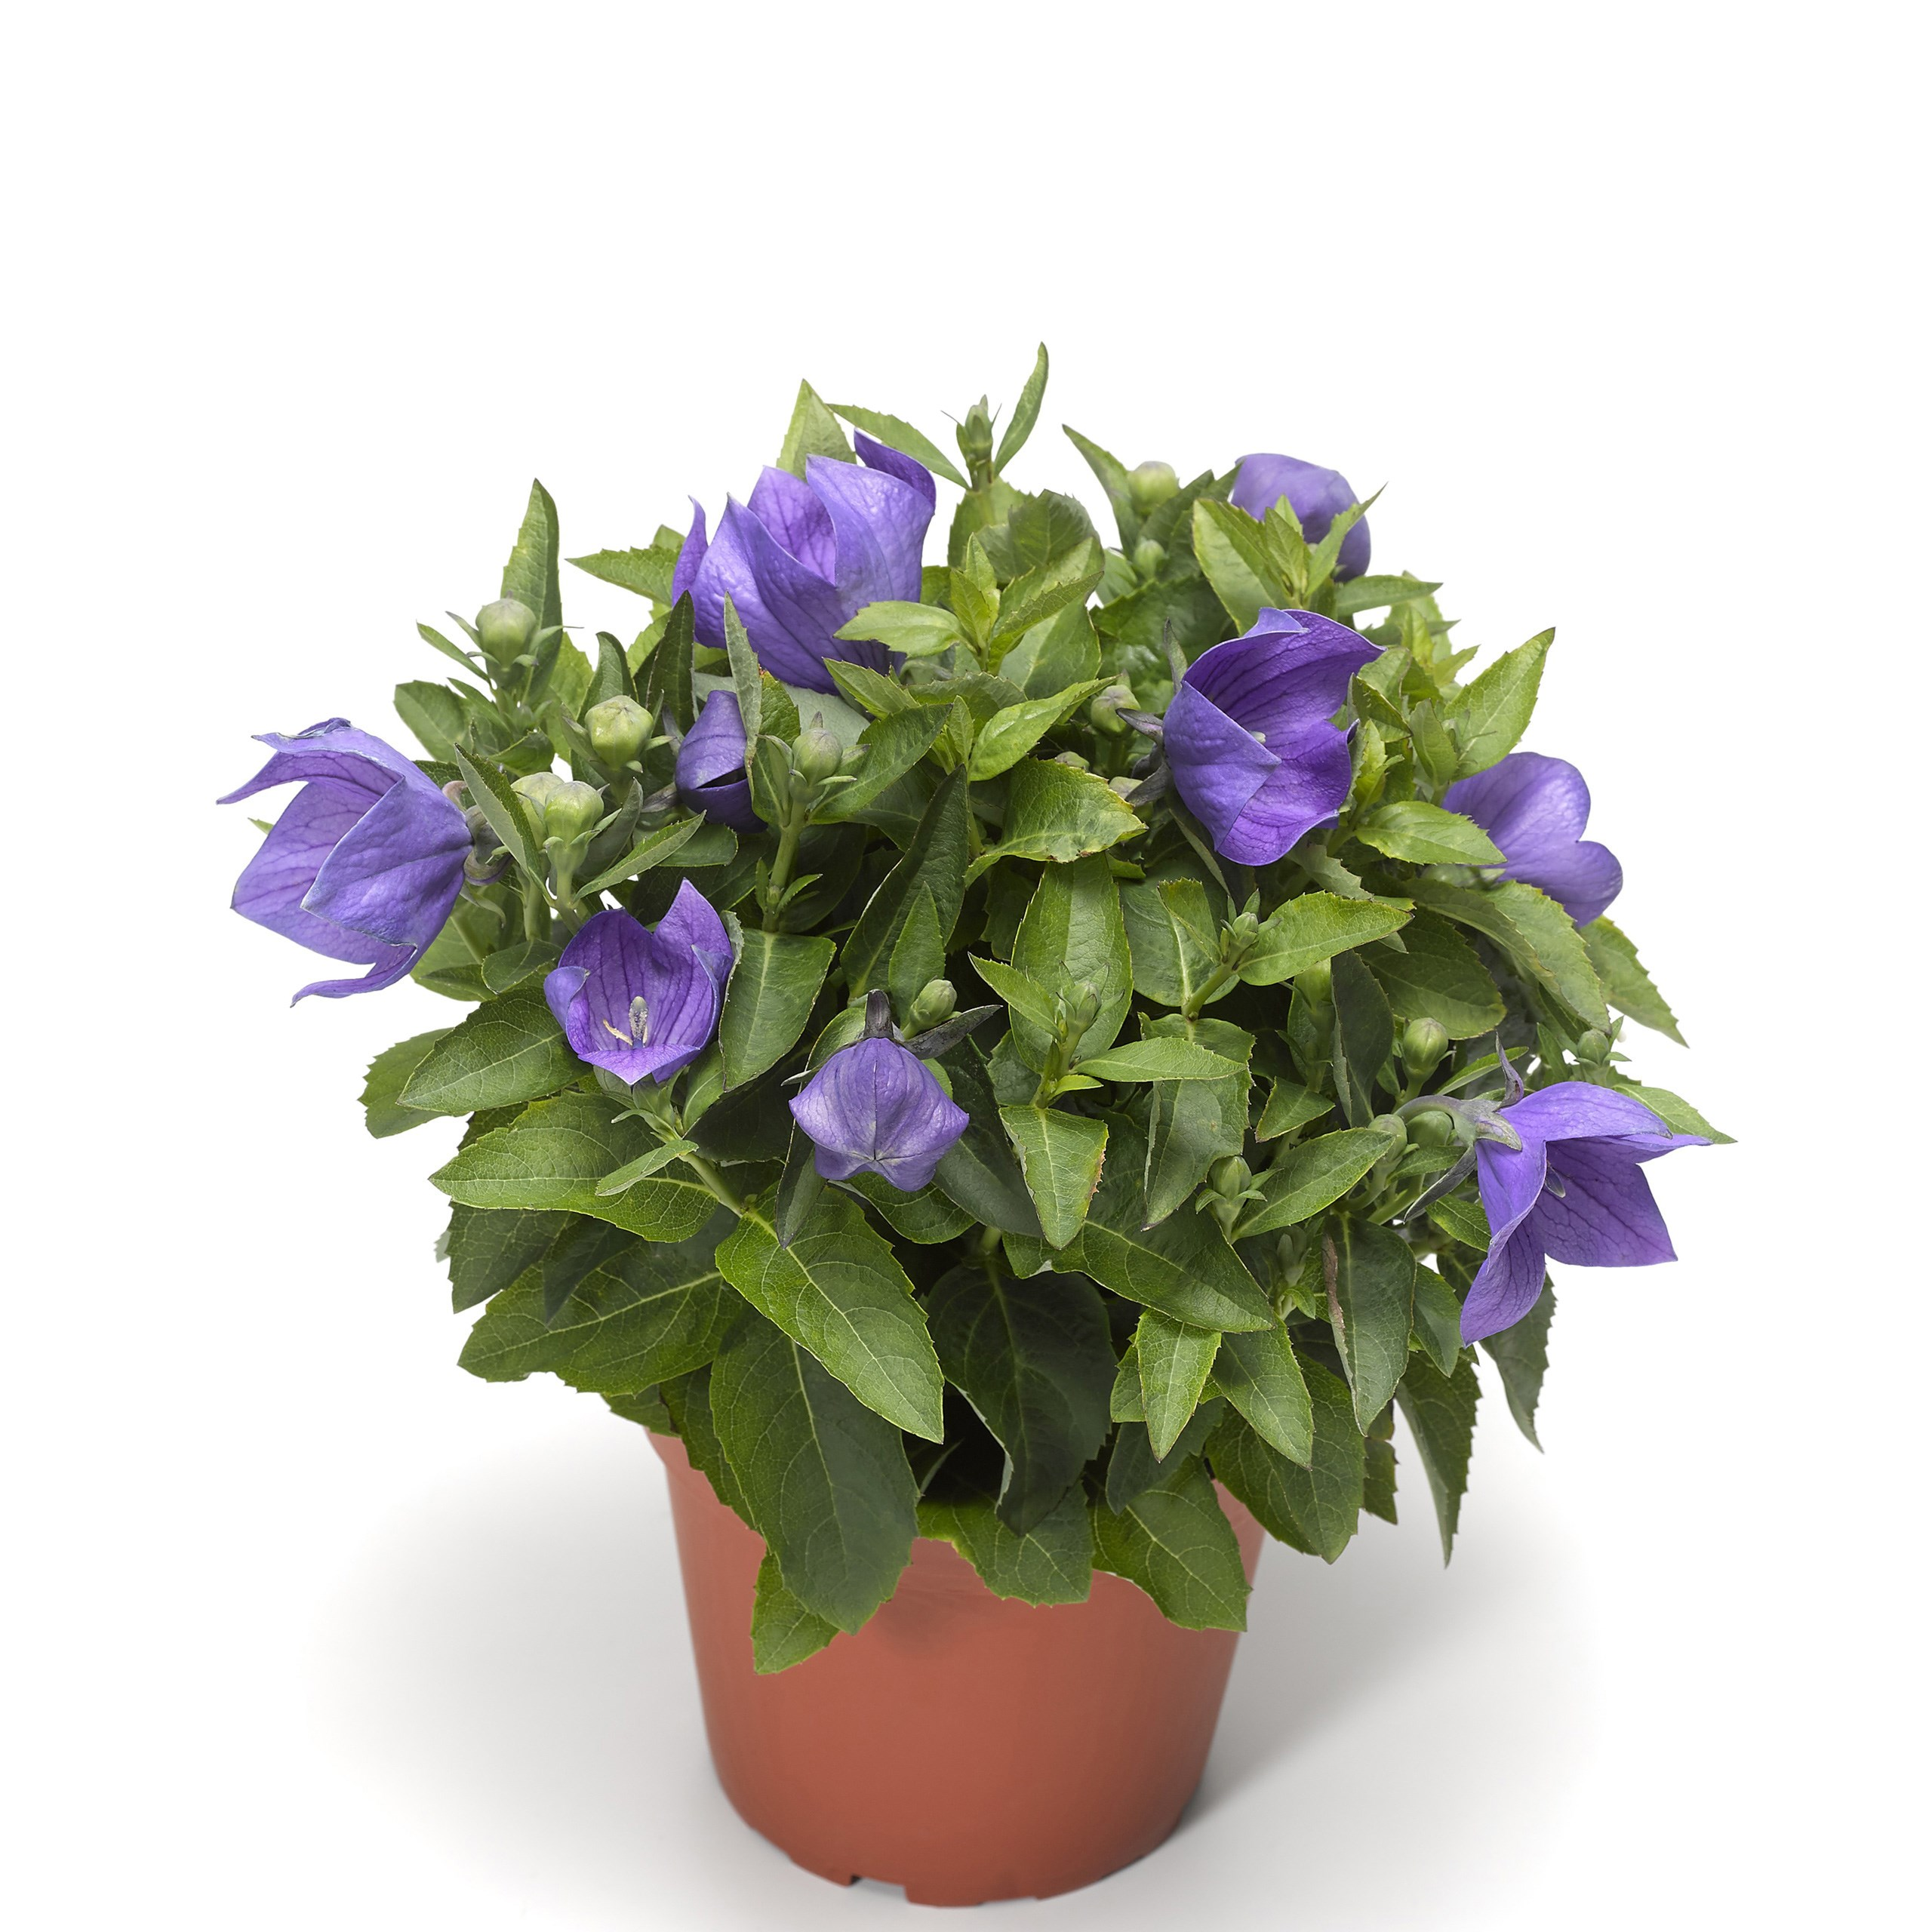 /Images/johnsonnursery/product-images/Platycodon Twinkle Blue pot_ji5ctk6nq.jpg